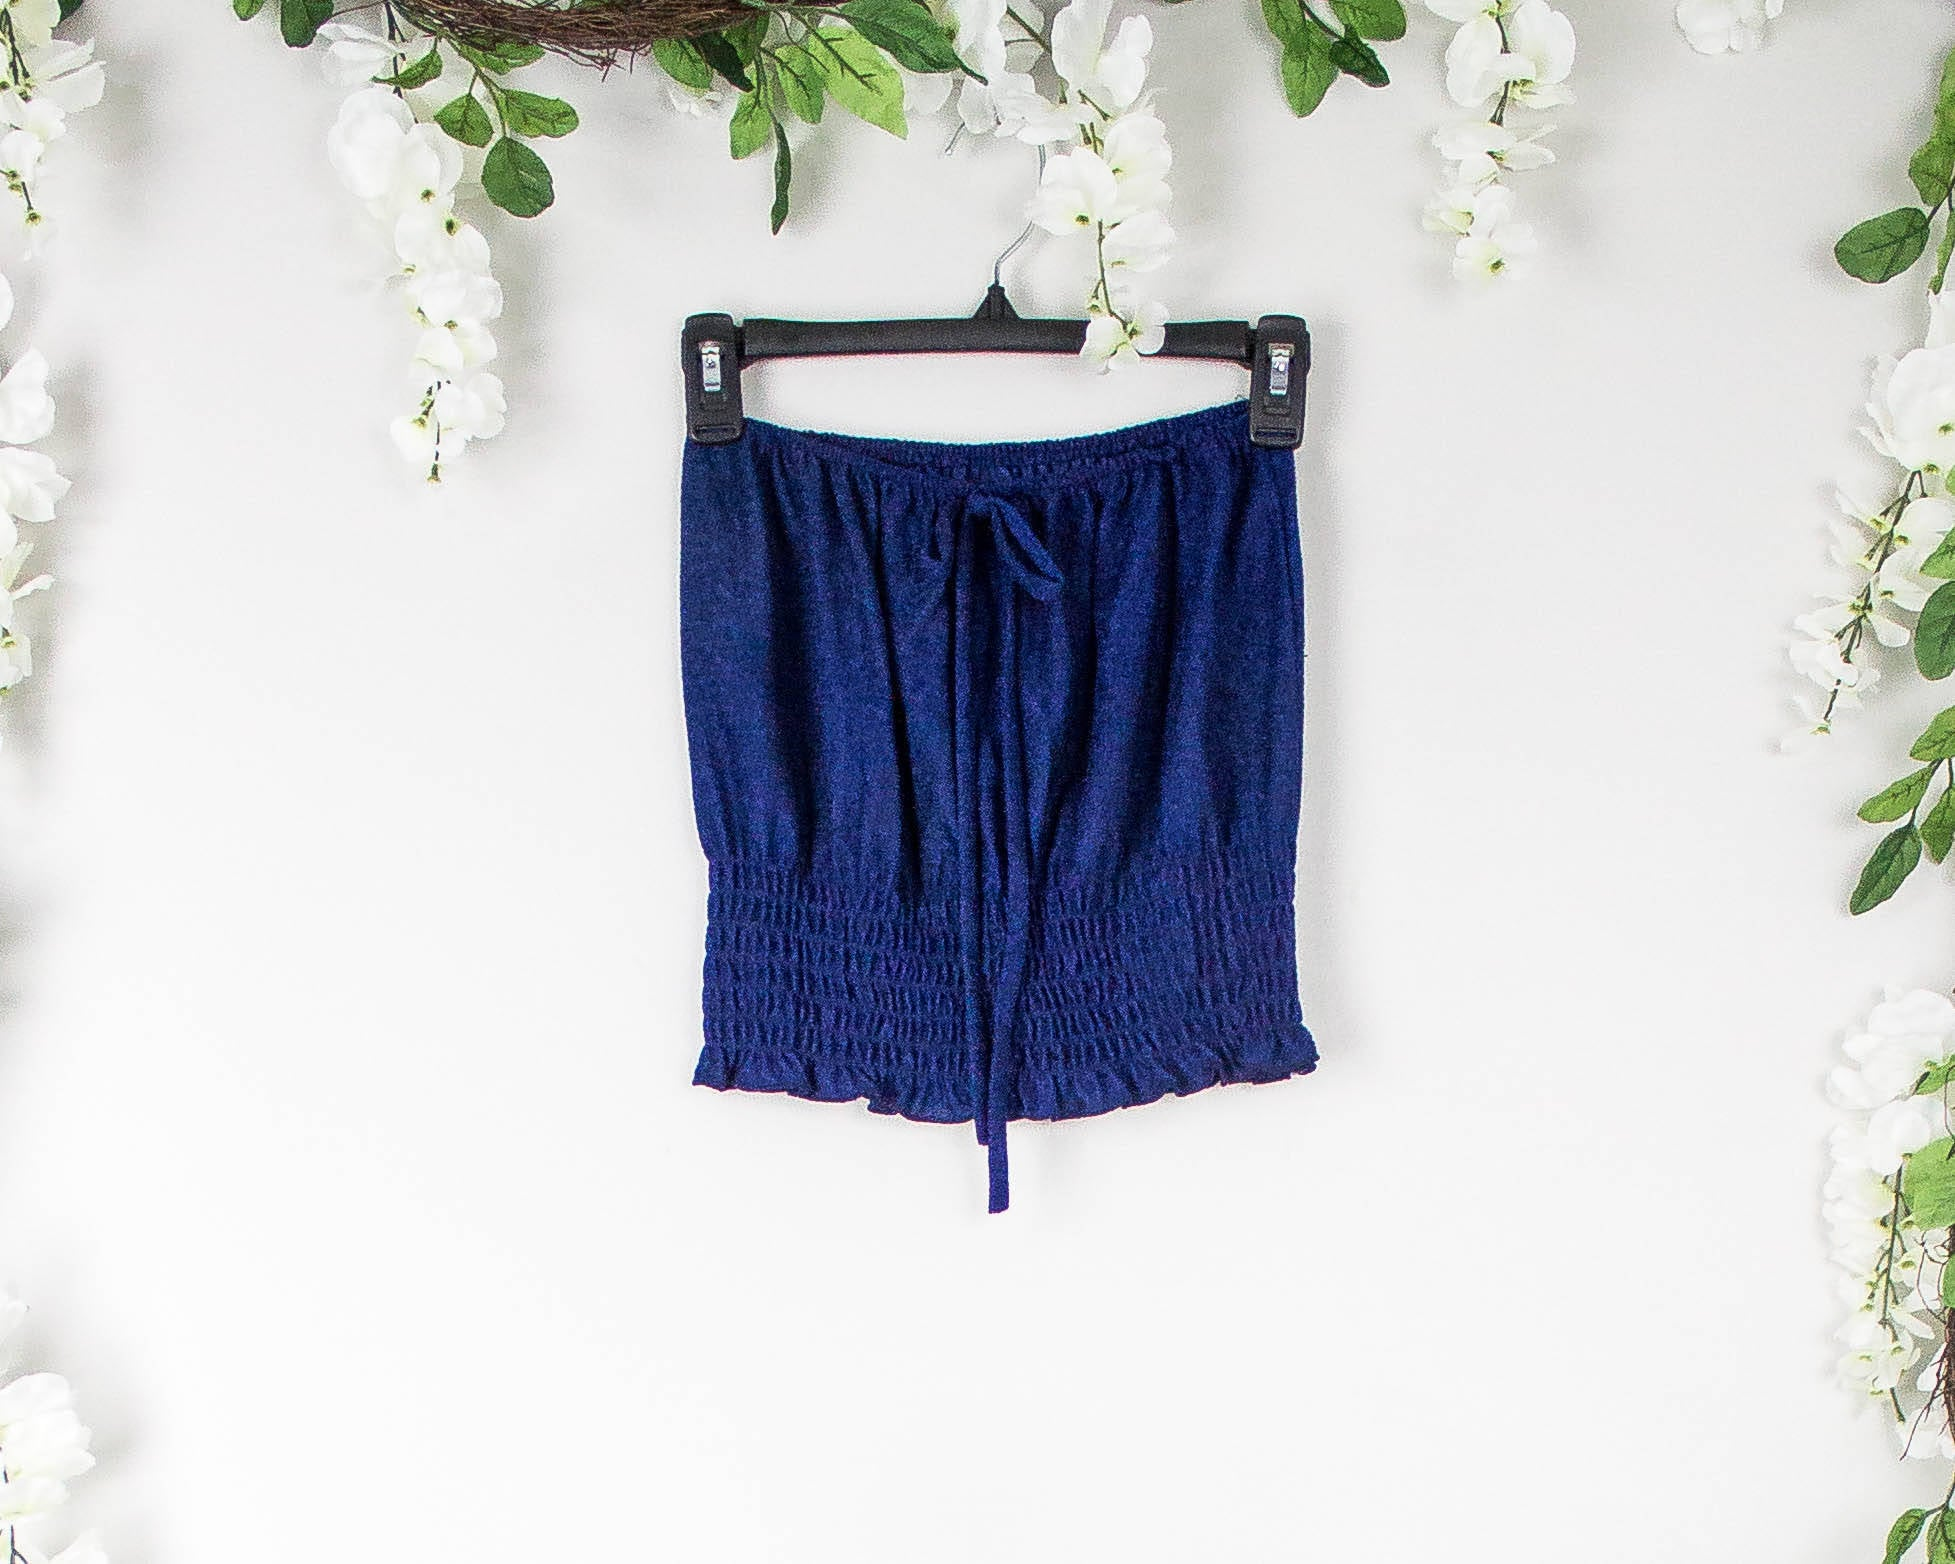 Vintage 70s Navy Tube Top